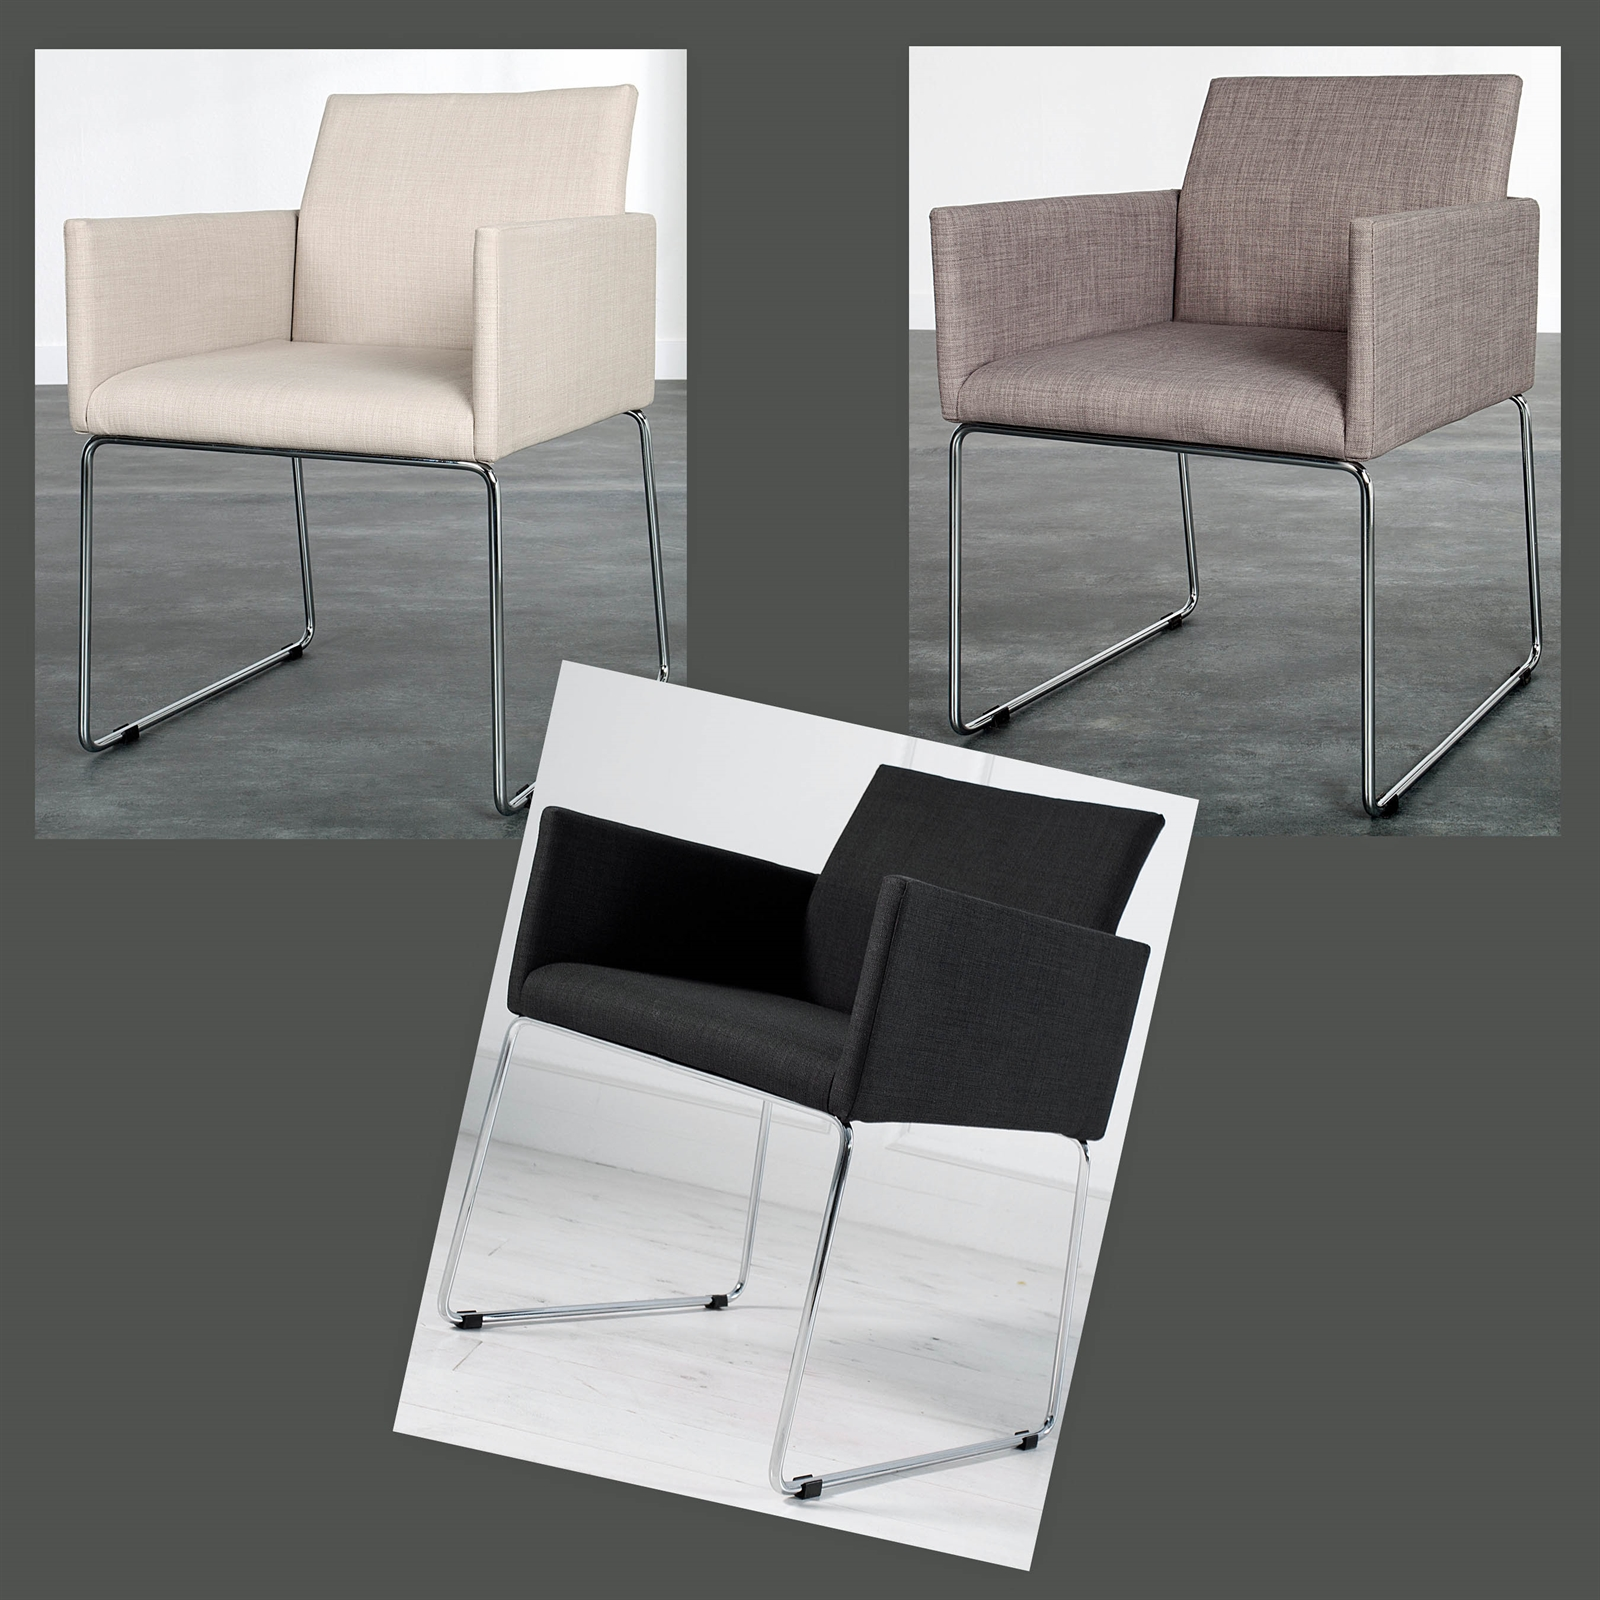 Cloth Covered Office Chairs Design Chair Quotconference Quot Office Or Lobby Armchair With